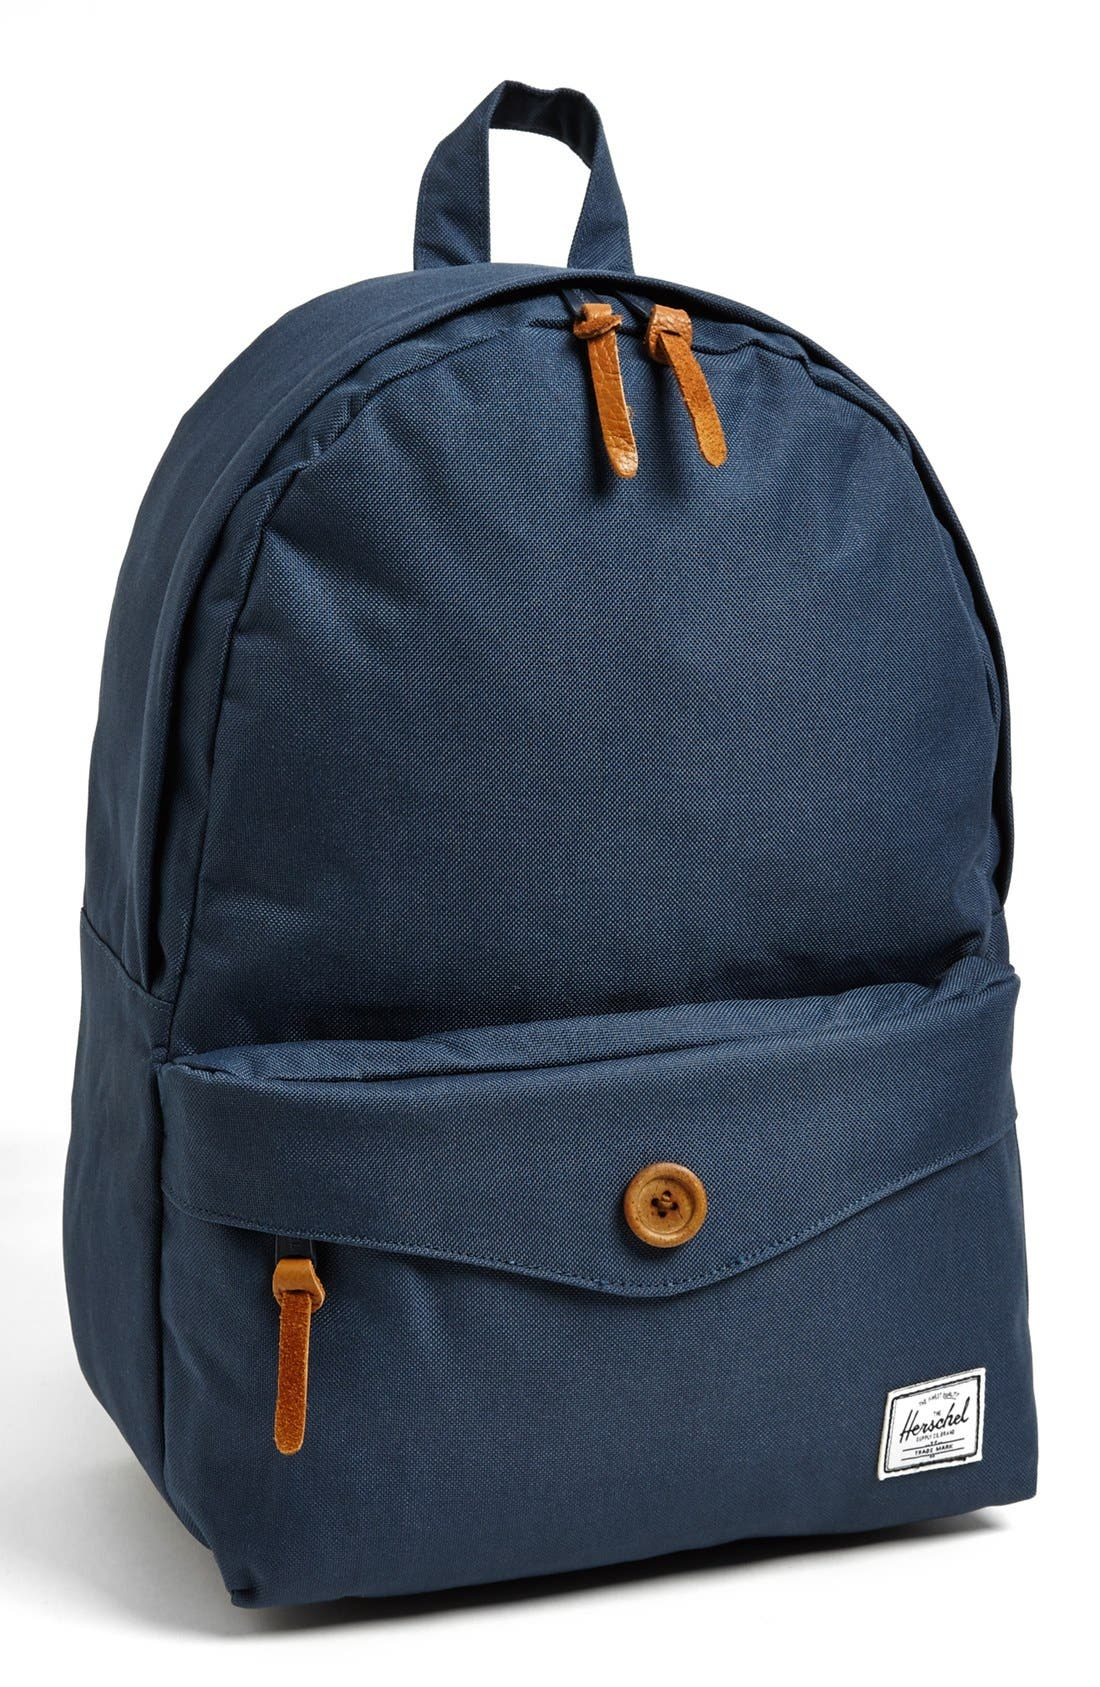 'Sydney' Backpack,                             Main thumbnail 1, color,                             Navy